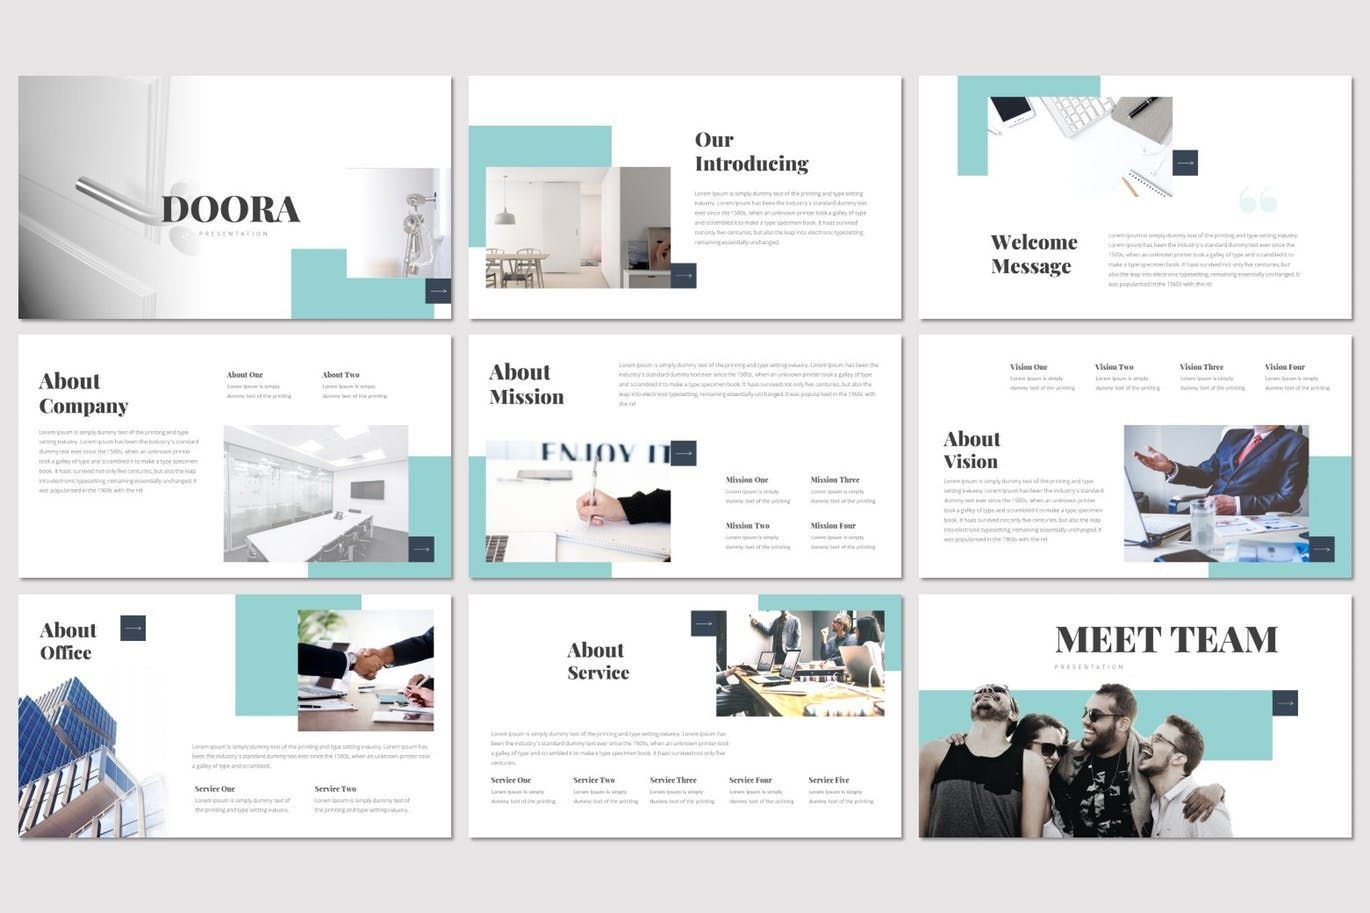 Doora - Google Slides Template, Slide 2, 07695, Presentation Templates — PoweredTemplate.com